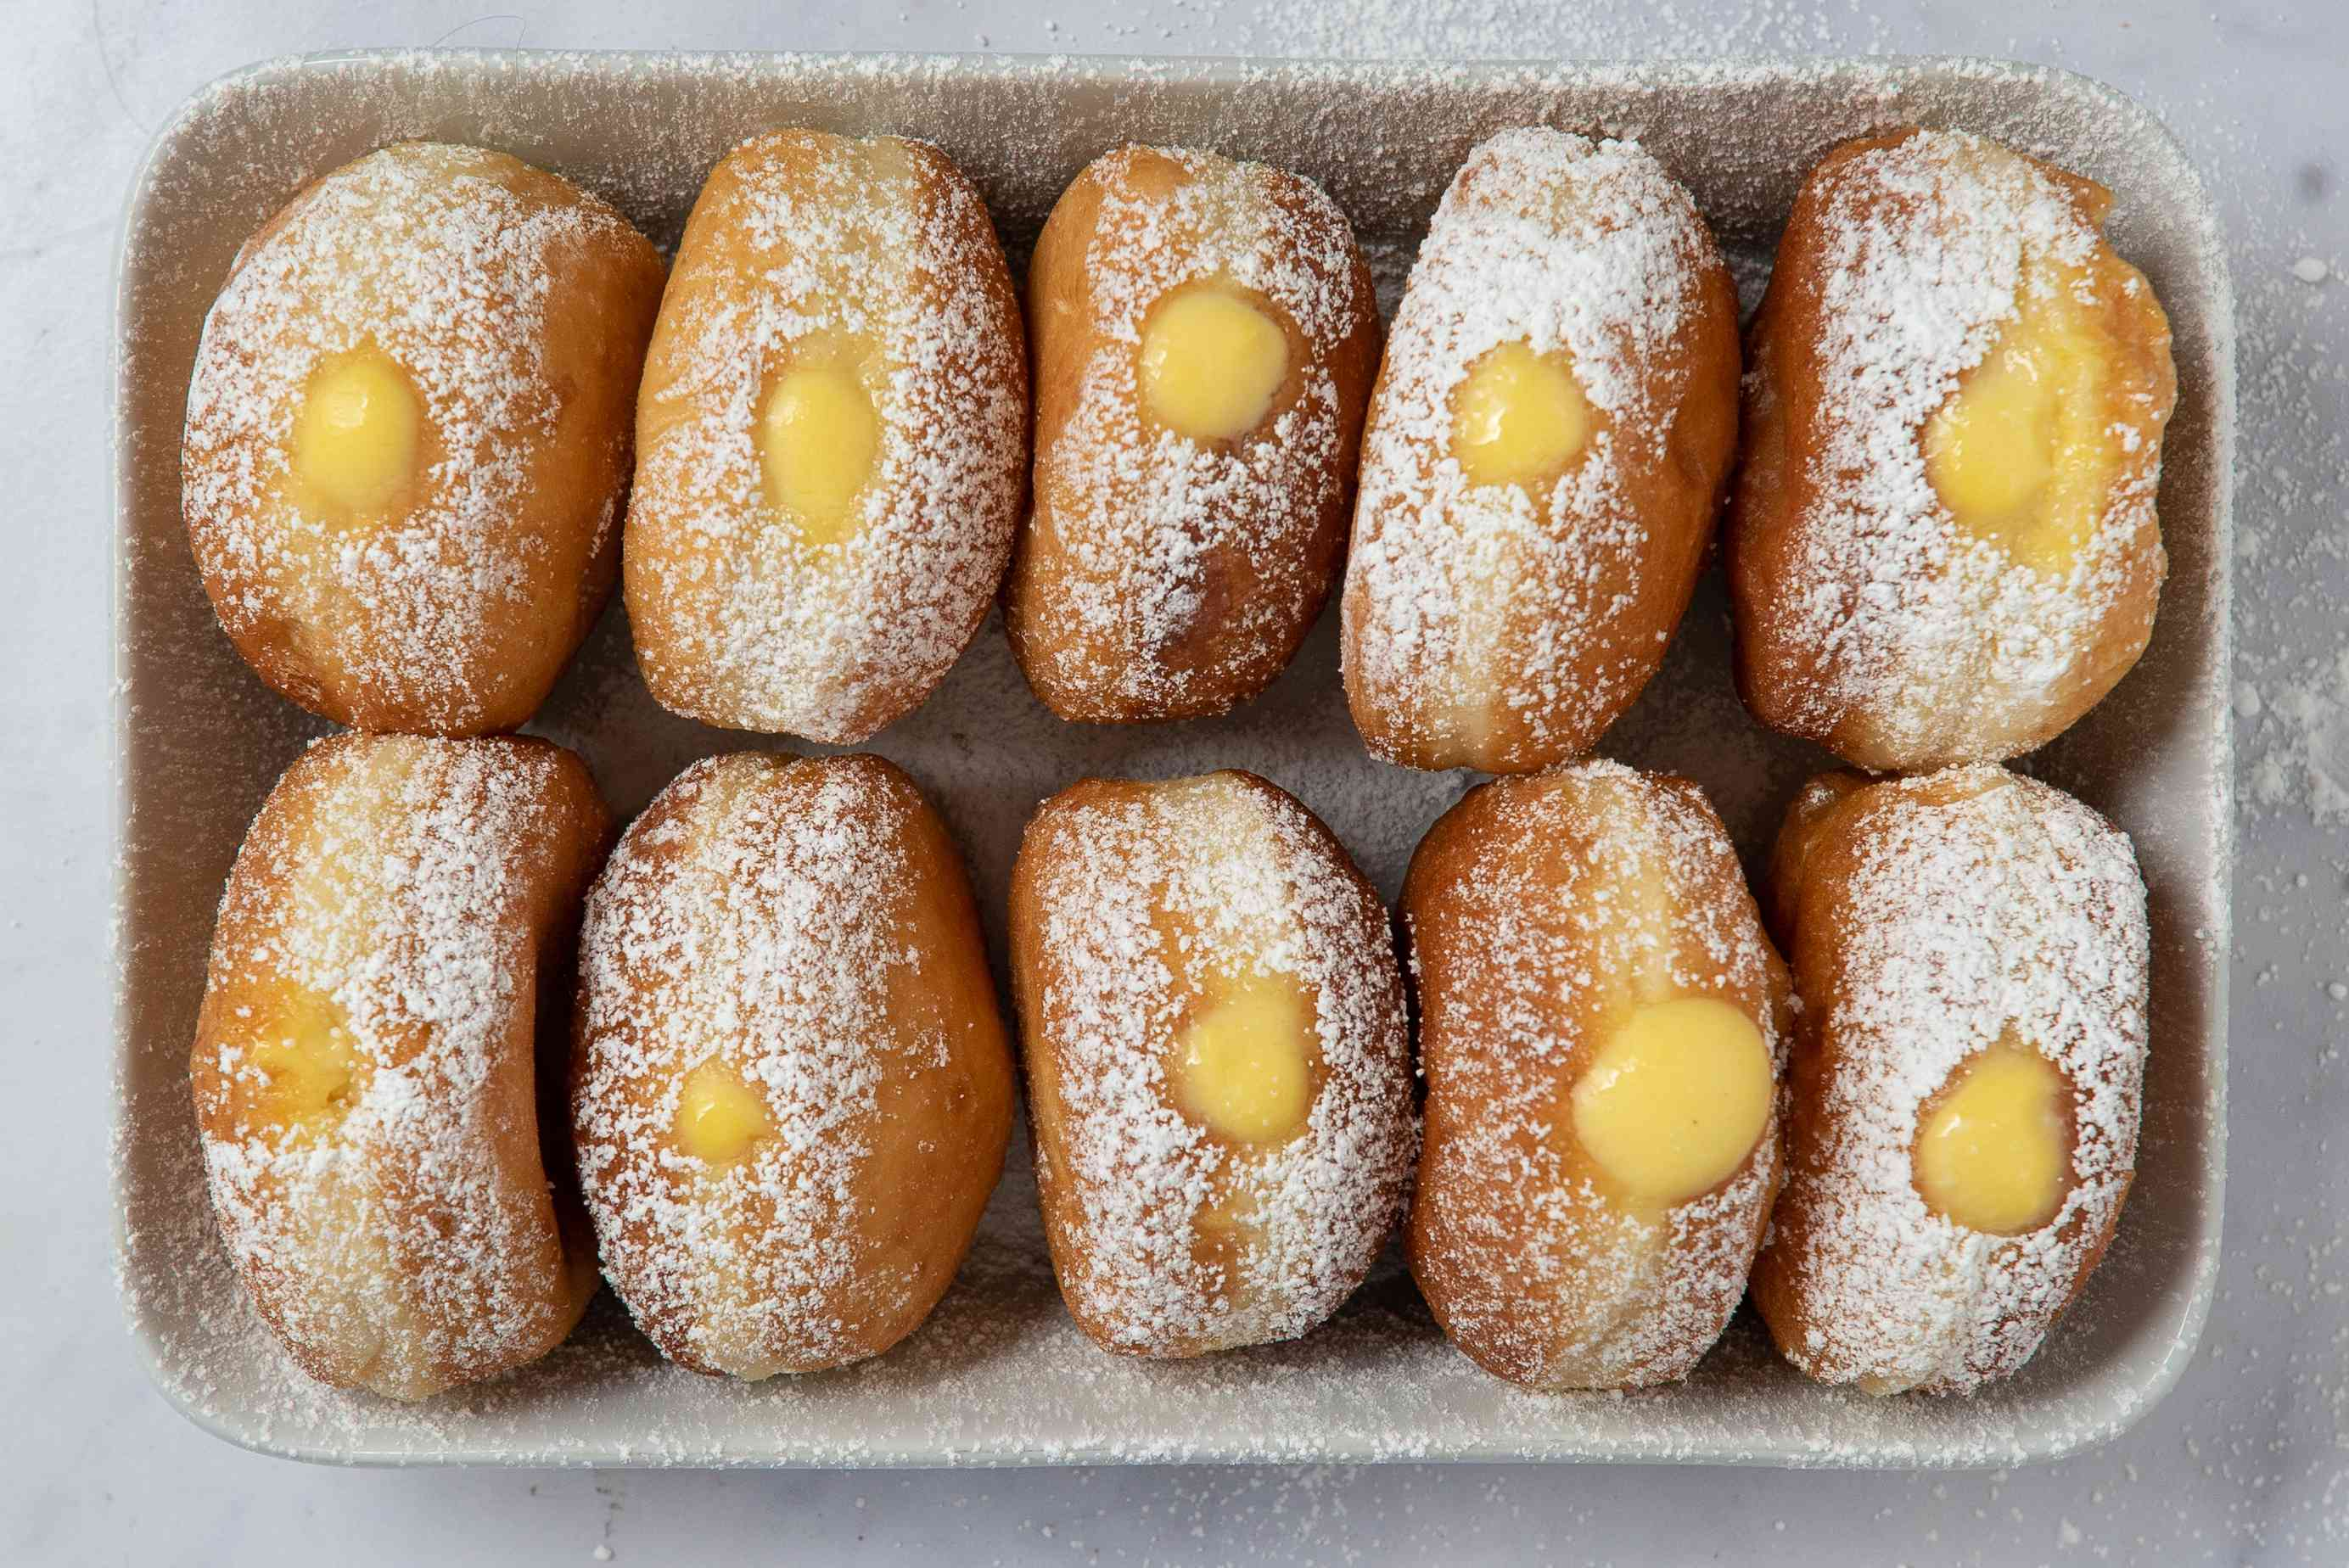 Cream Filled Doughnuts with powdered sugar on top